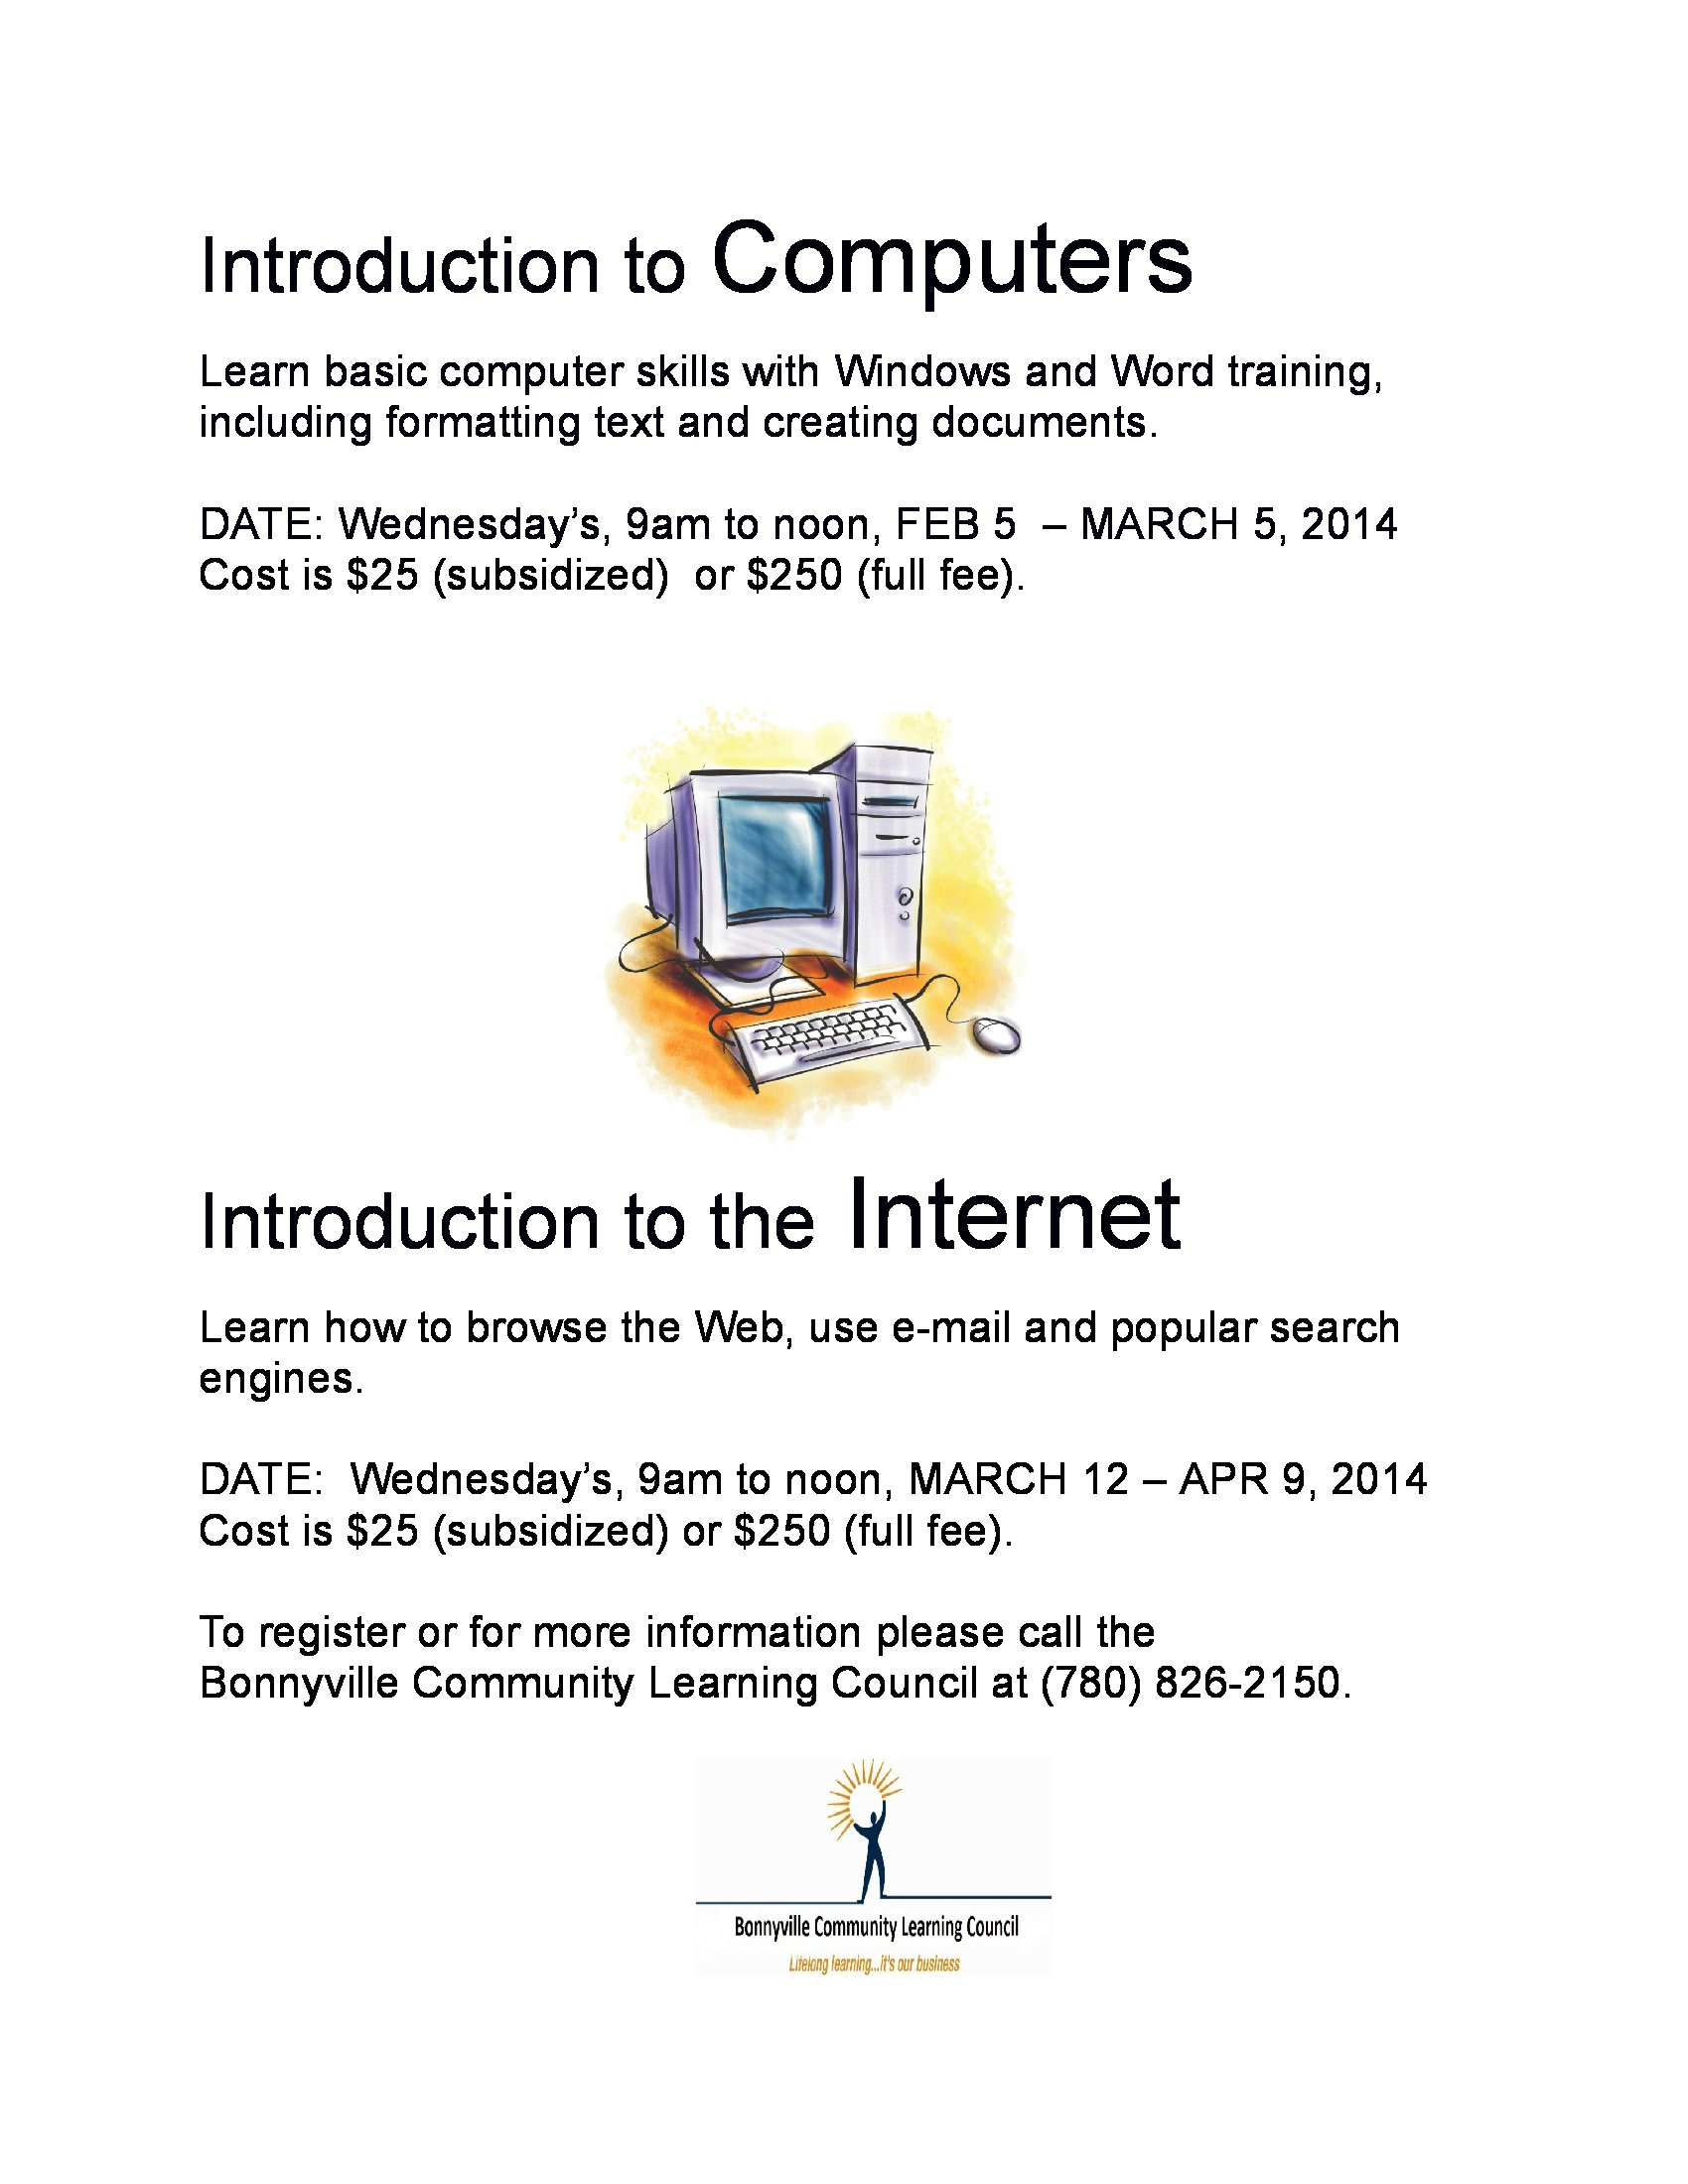 the introduction to computers Introduction to computers on access skills training | upcoming introduction to computer course planned for 3rd, 5th 10th, 12th and 17th october 200 – 500pm minimum numbers apply the course is designed for beginners who are keen to extend their understanding of how to use computers the skills.